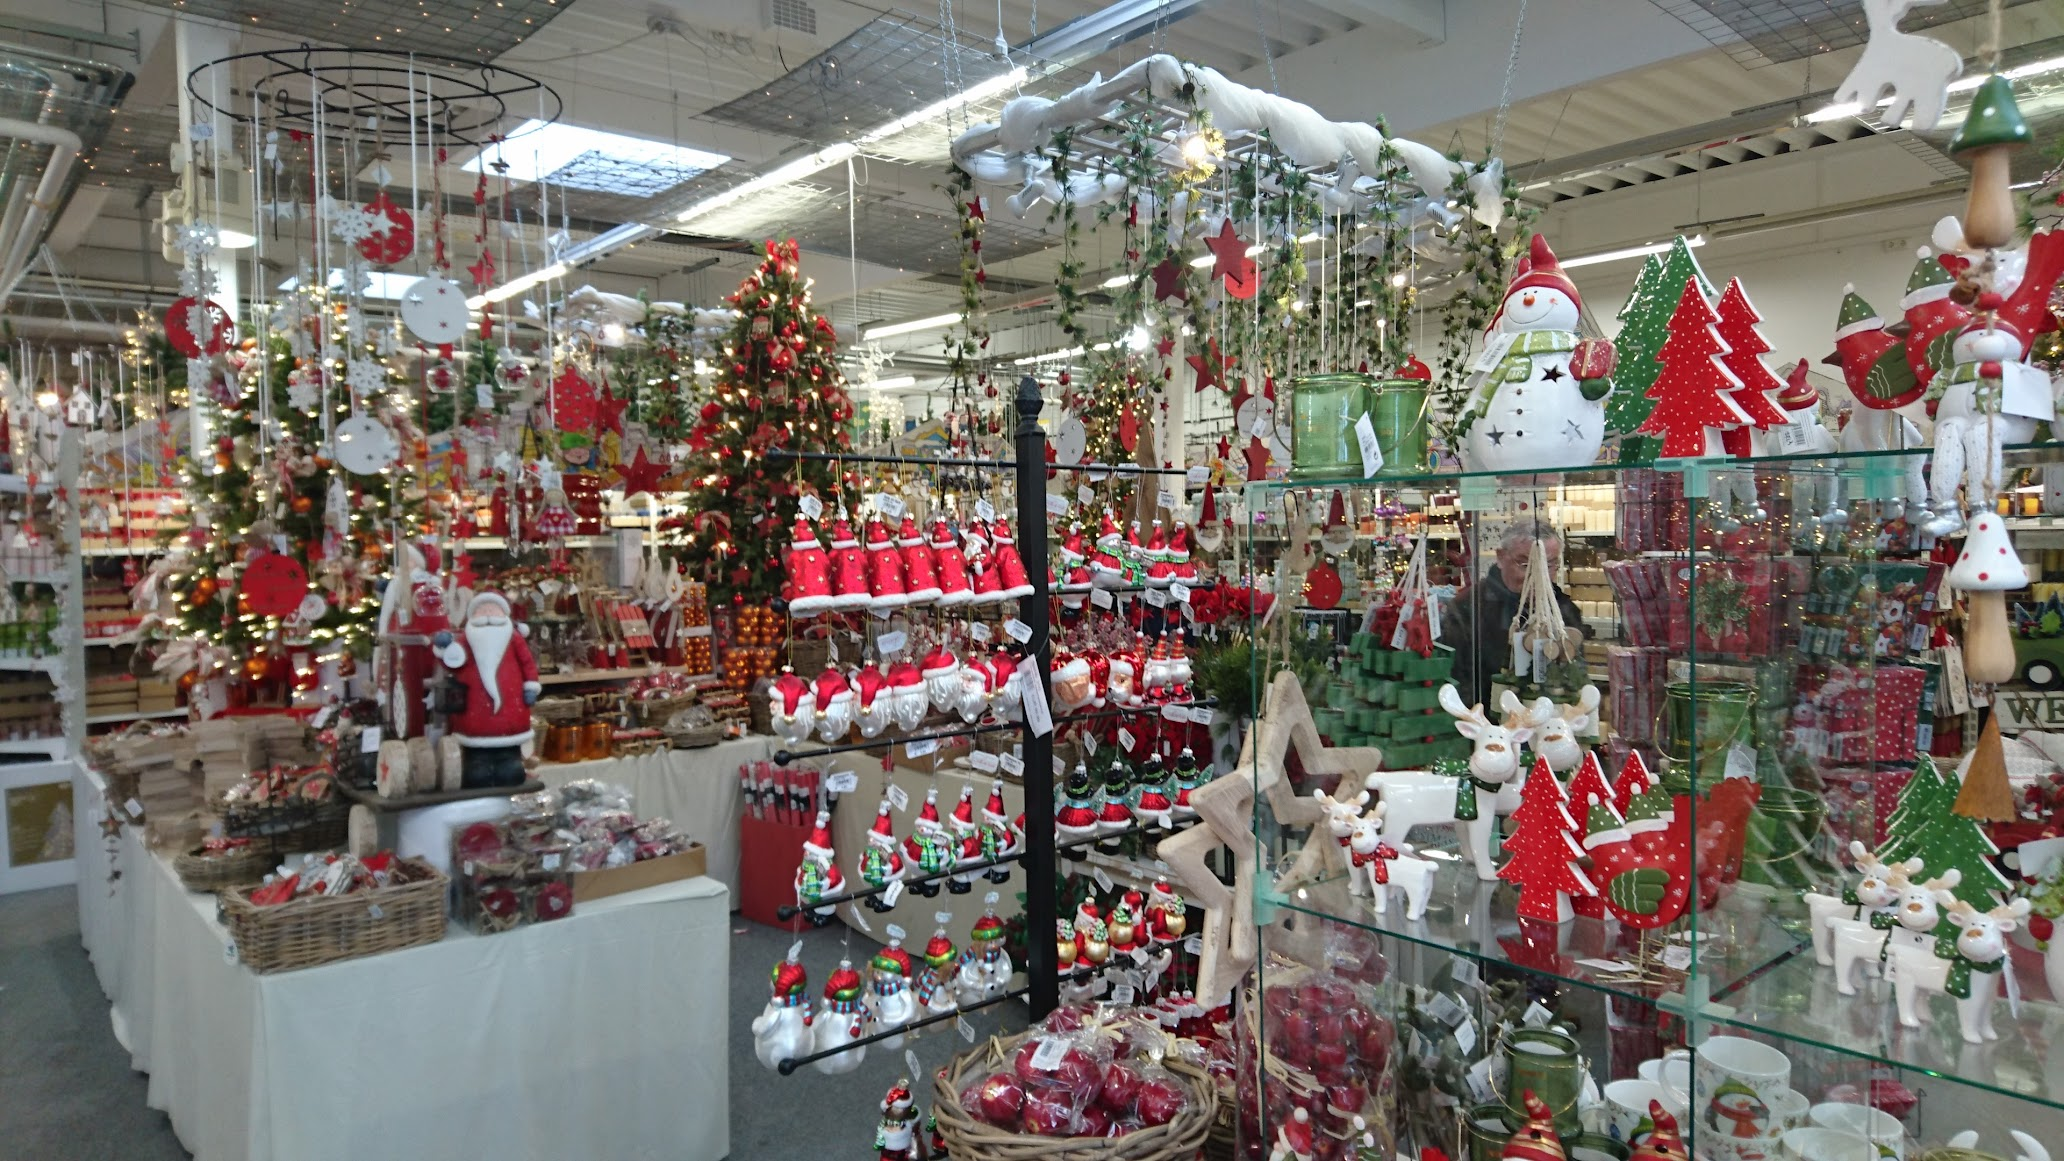 Gartencenter Lenders Mönchengladbach Weihnachten Advent